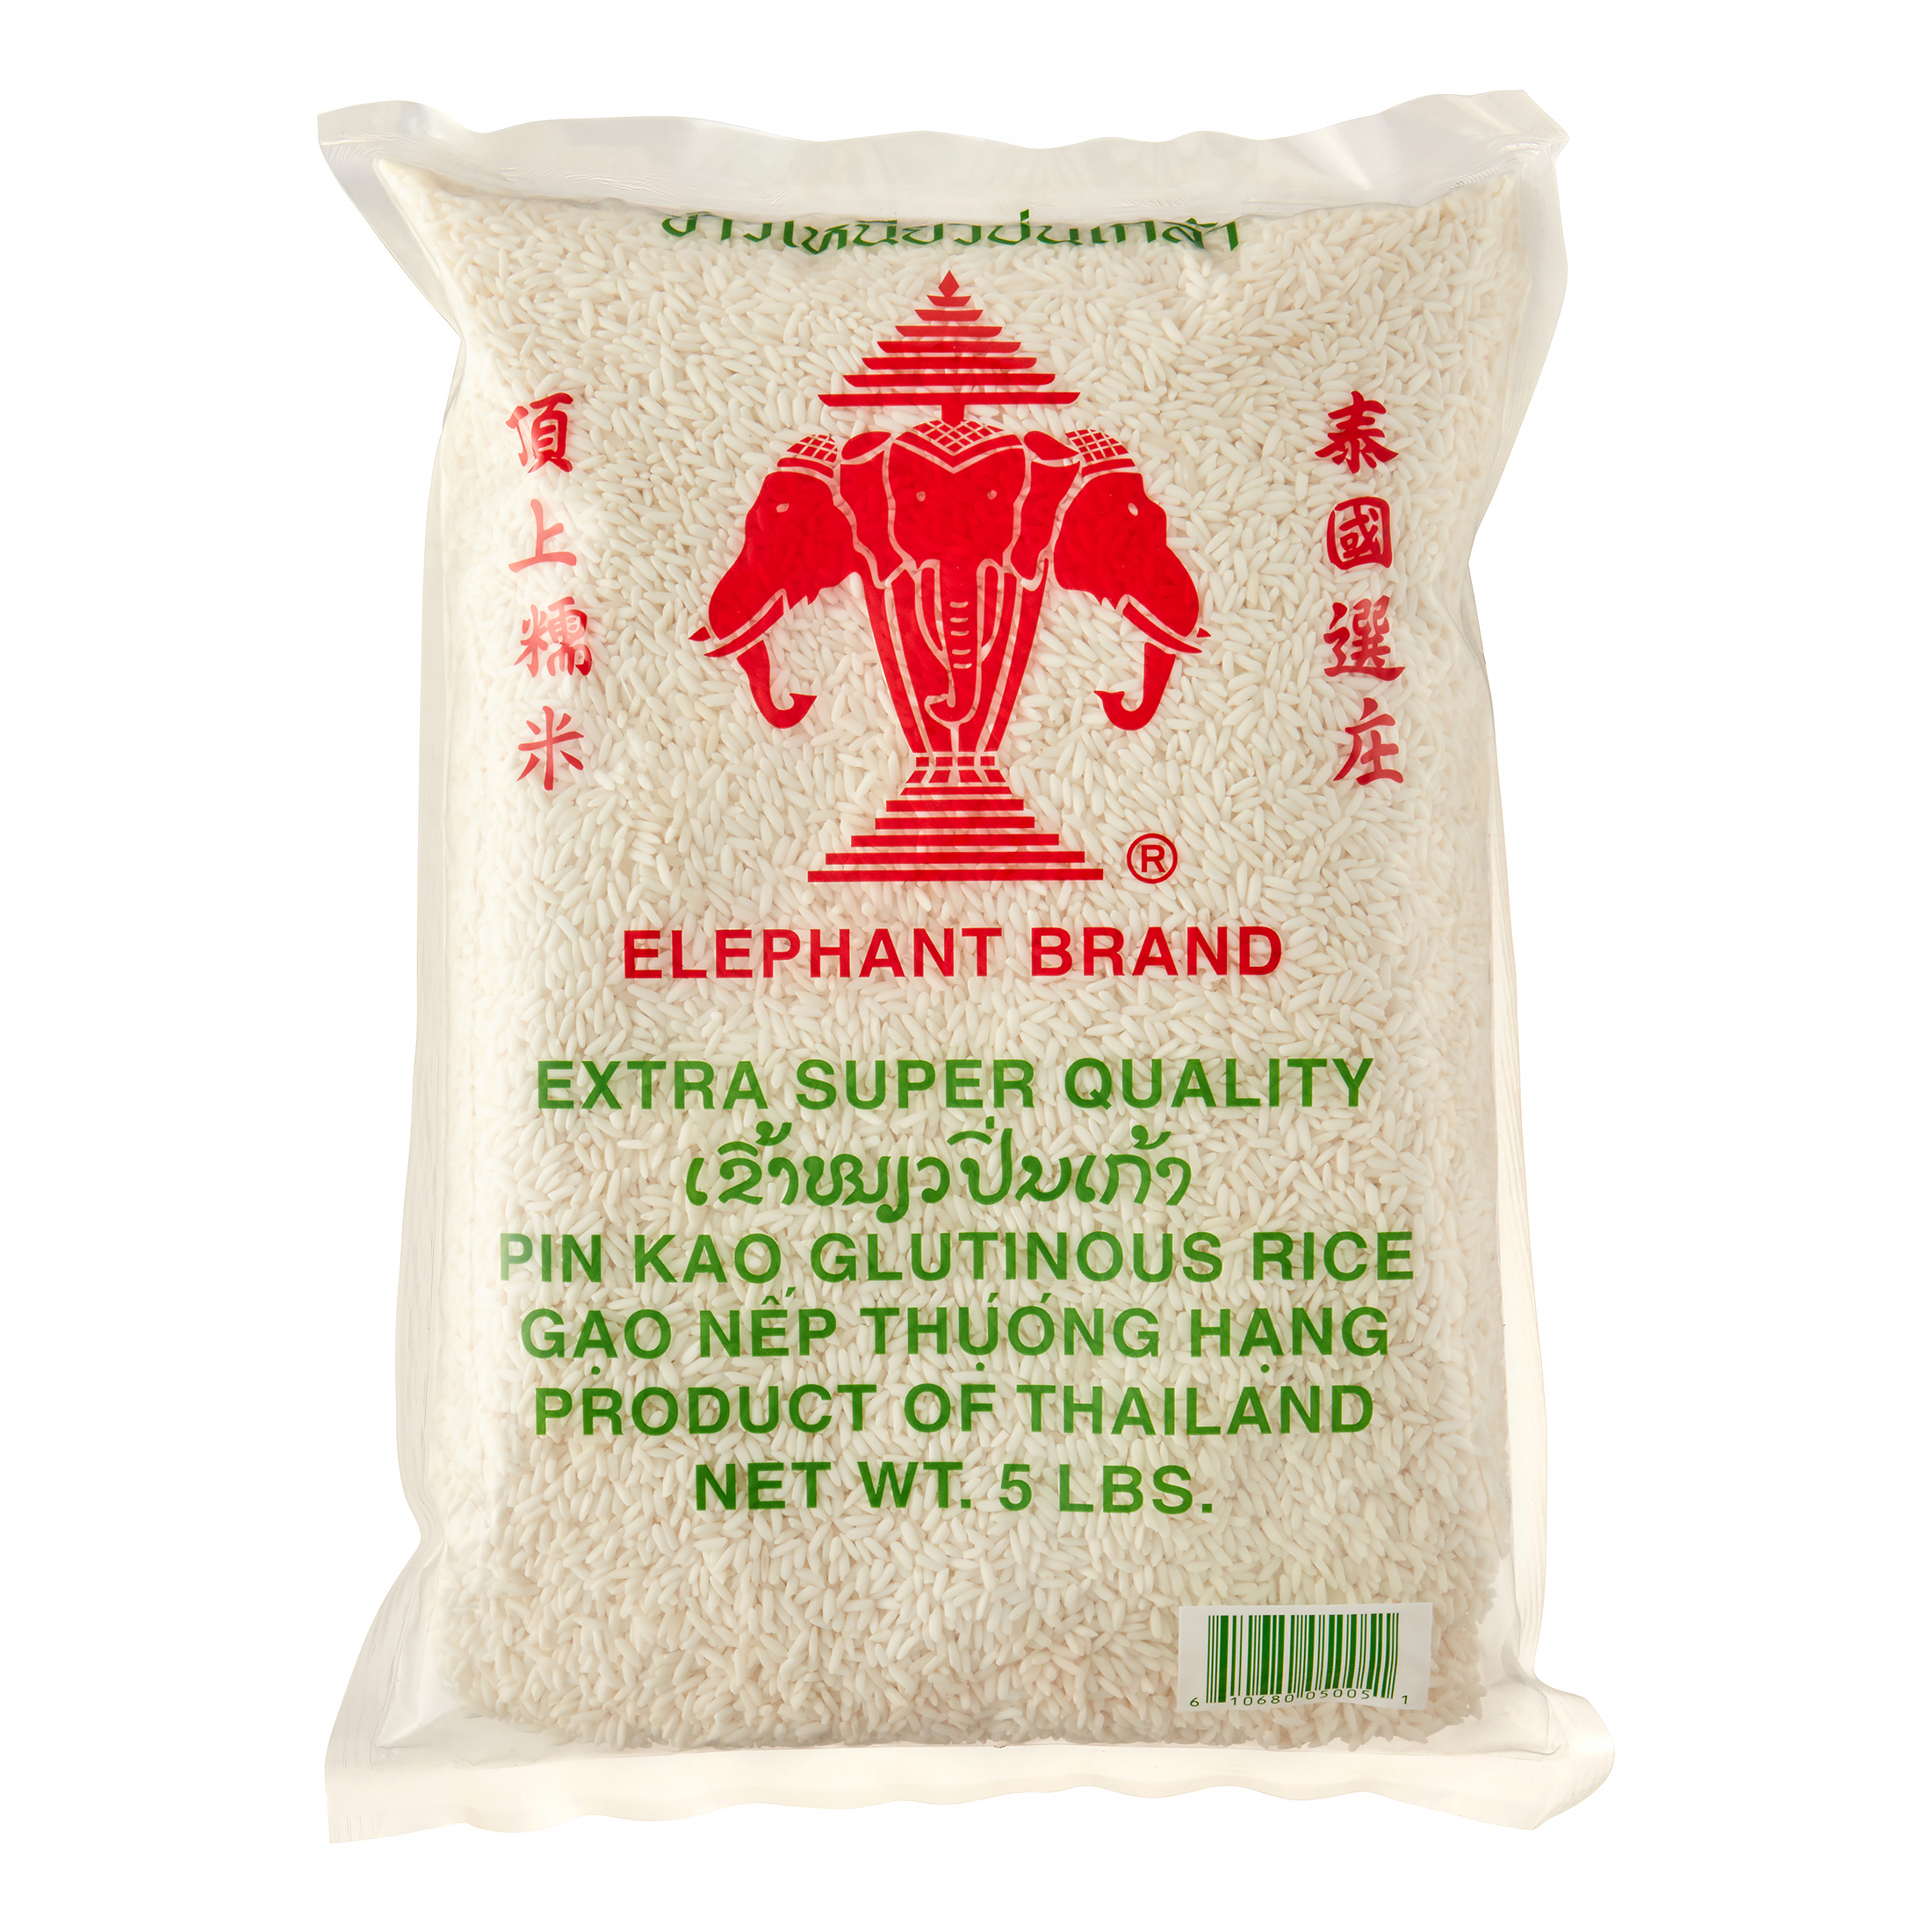 Elephant Brand, Thai sweet rice, 5 Pound - Walmart.com